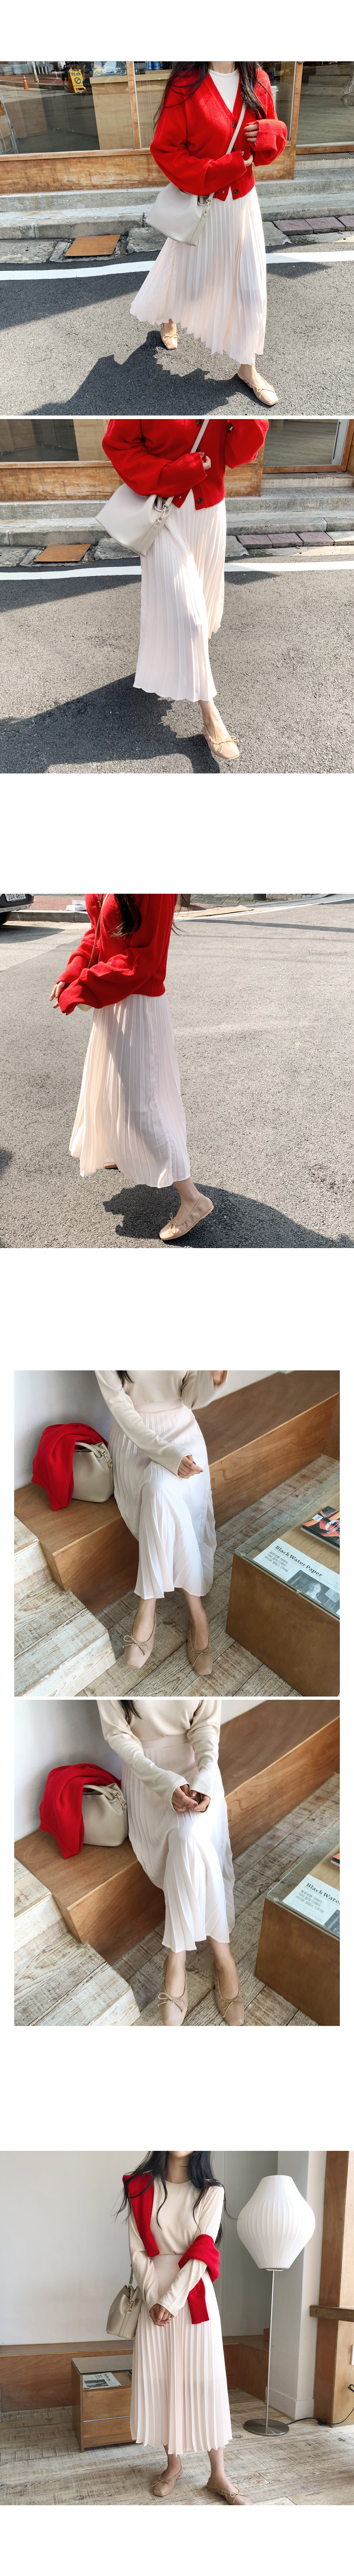 Lunch ribbon flat shoes